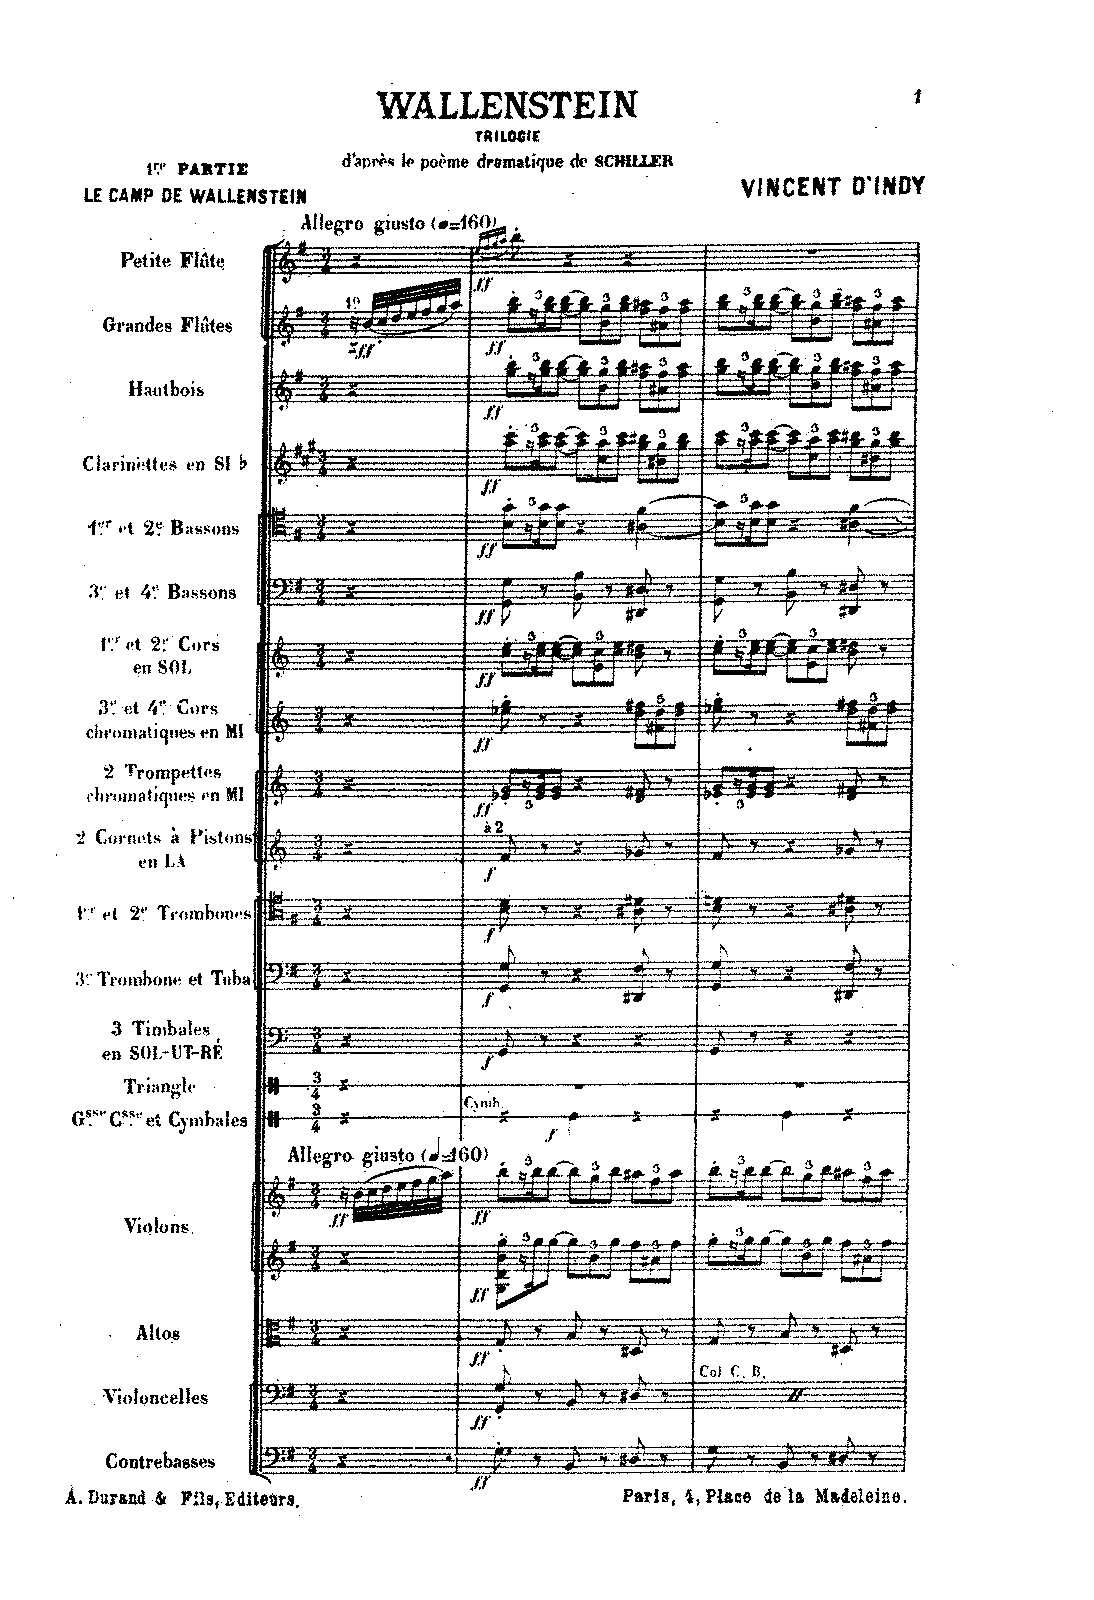 D'Indy - Wallenstein, Op. 12 - Part 1 - Le Camp de Wallenstein (orch. score).pdf